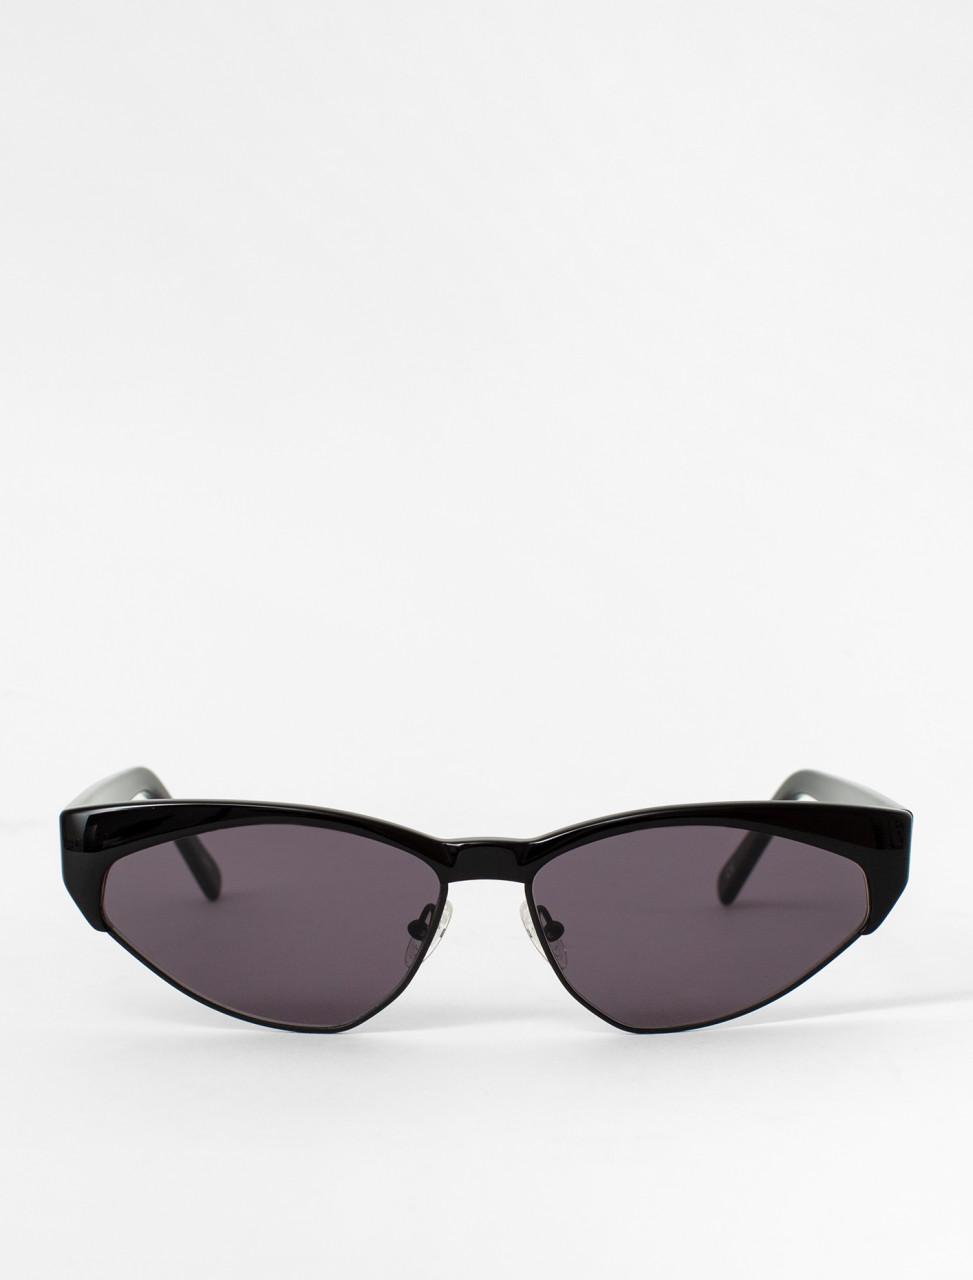 Volta Sunglasses